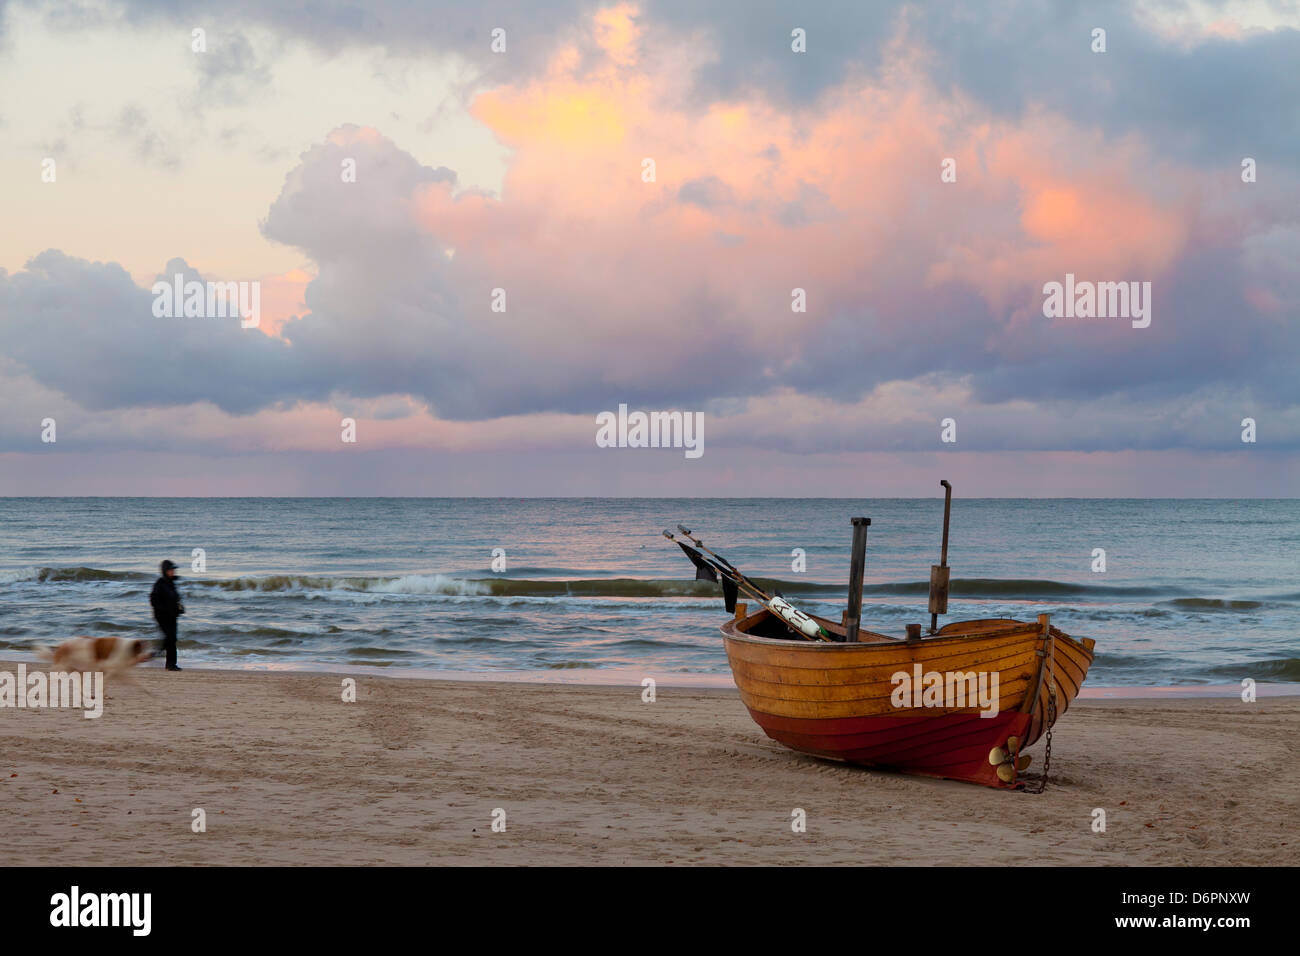 Boat on beach, Ahlbeck, Island of Usedom, Baltic Coast, Mecklenburg-Vorpommern, Germany, Europe - Stock Image